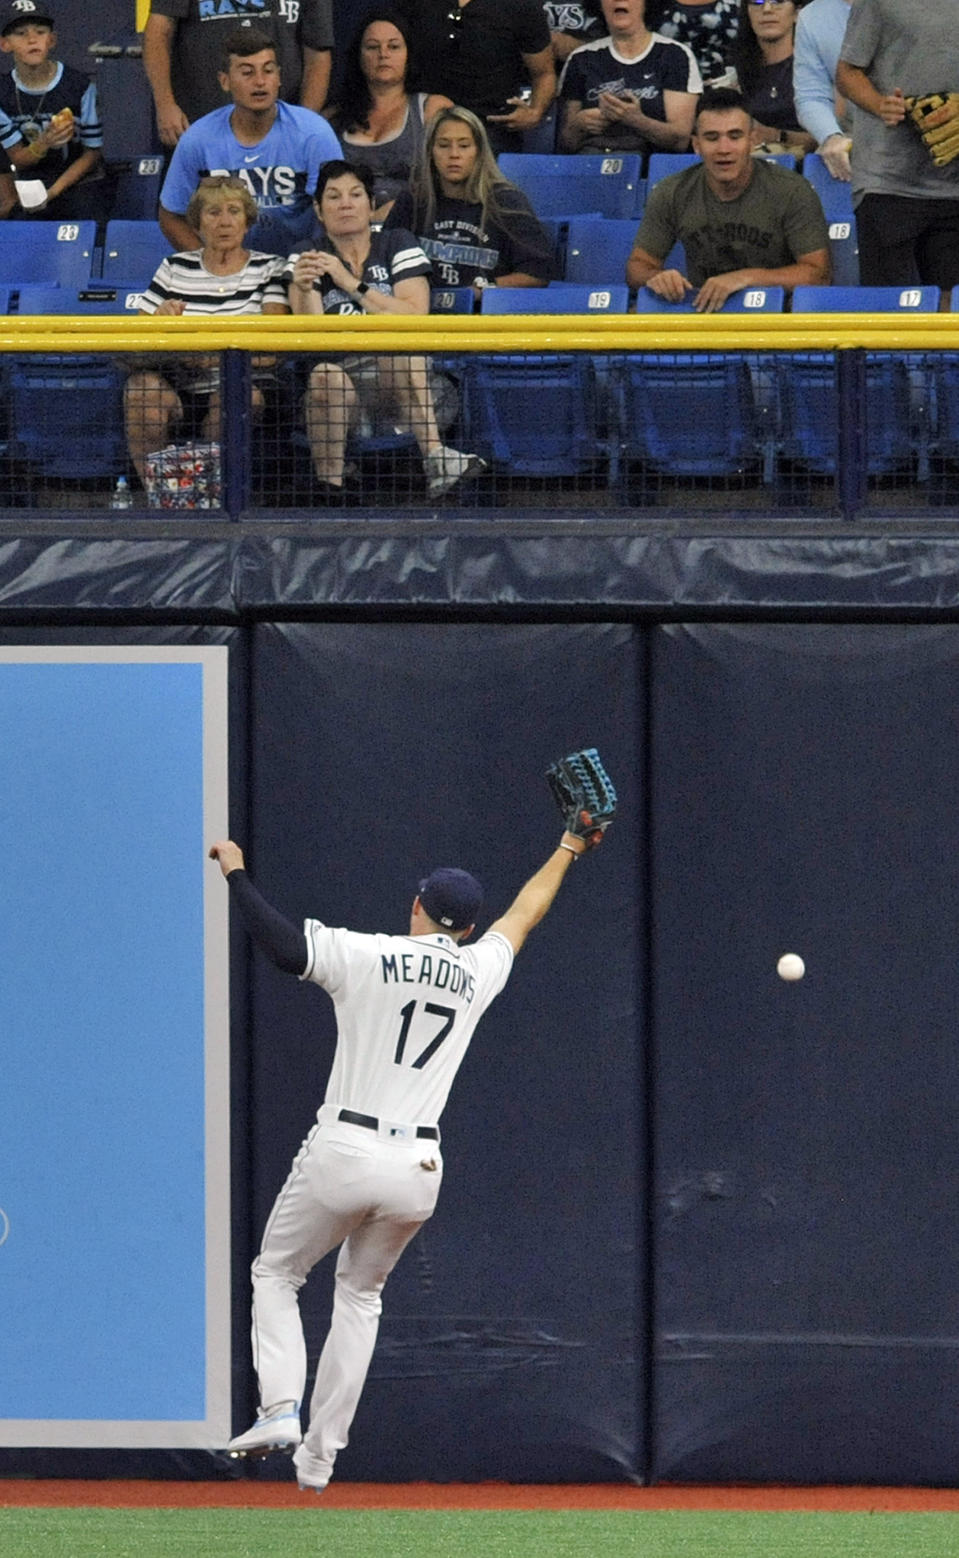 A fly ball hit by Chicago White Sox's Leury Garcia sails over Tampa Bay Rays center fielder Austin Meadows (17) for a double during the first inning of a baseball game Friday, July 19, 2019, in St. Petersburg, Fla. (AP Photo/Steve Nesius)